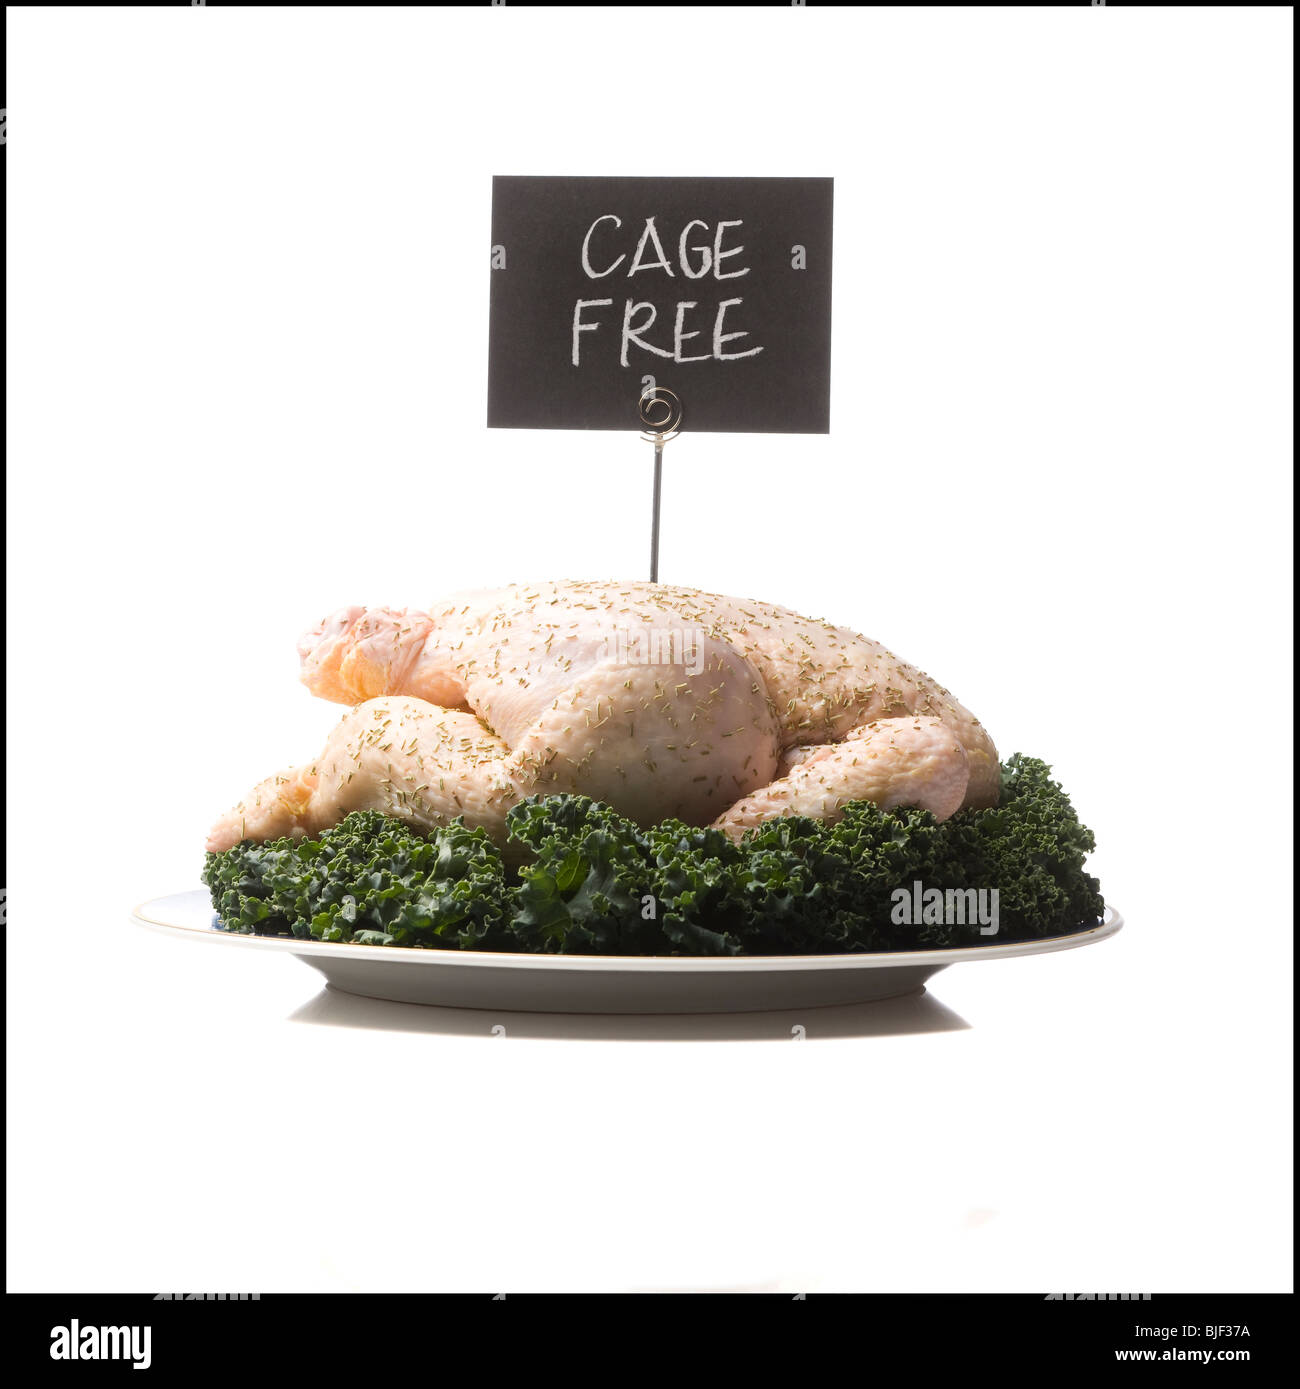 cage free chicken - Stock Image